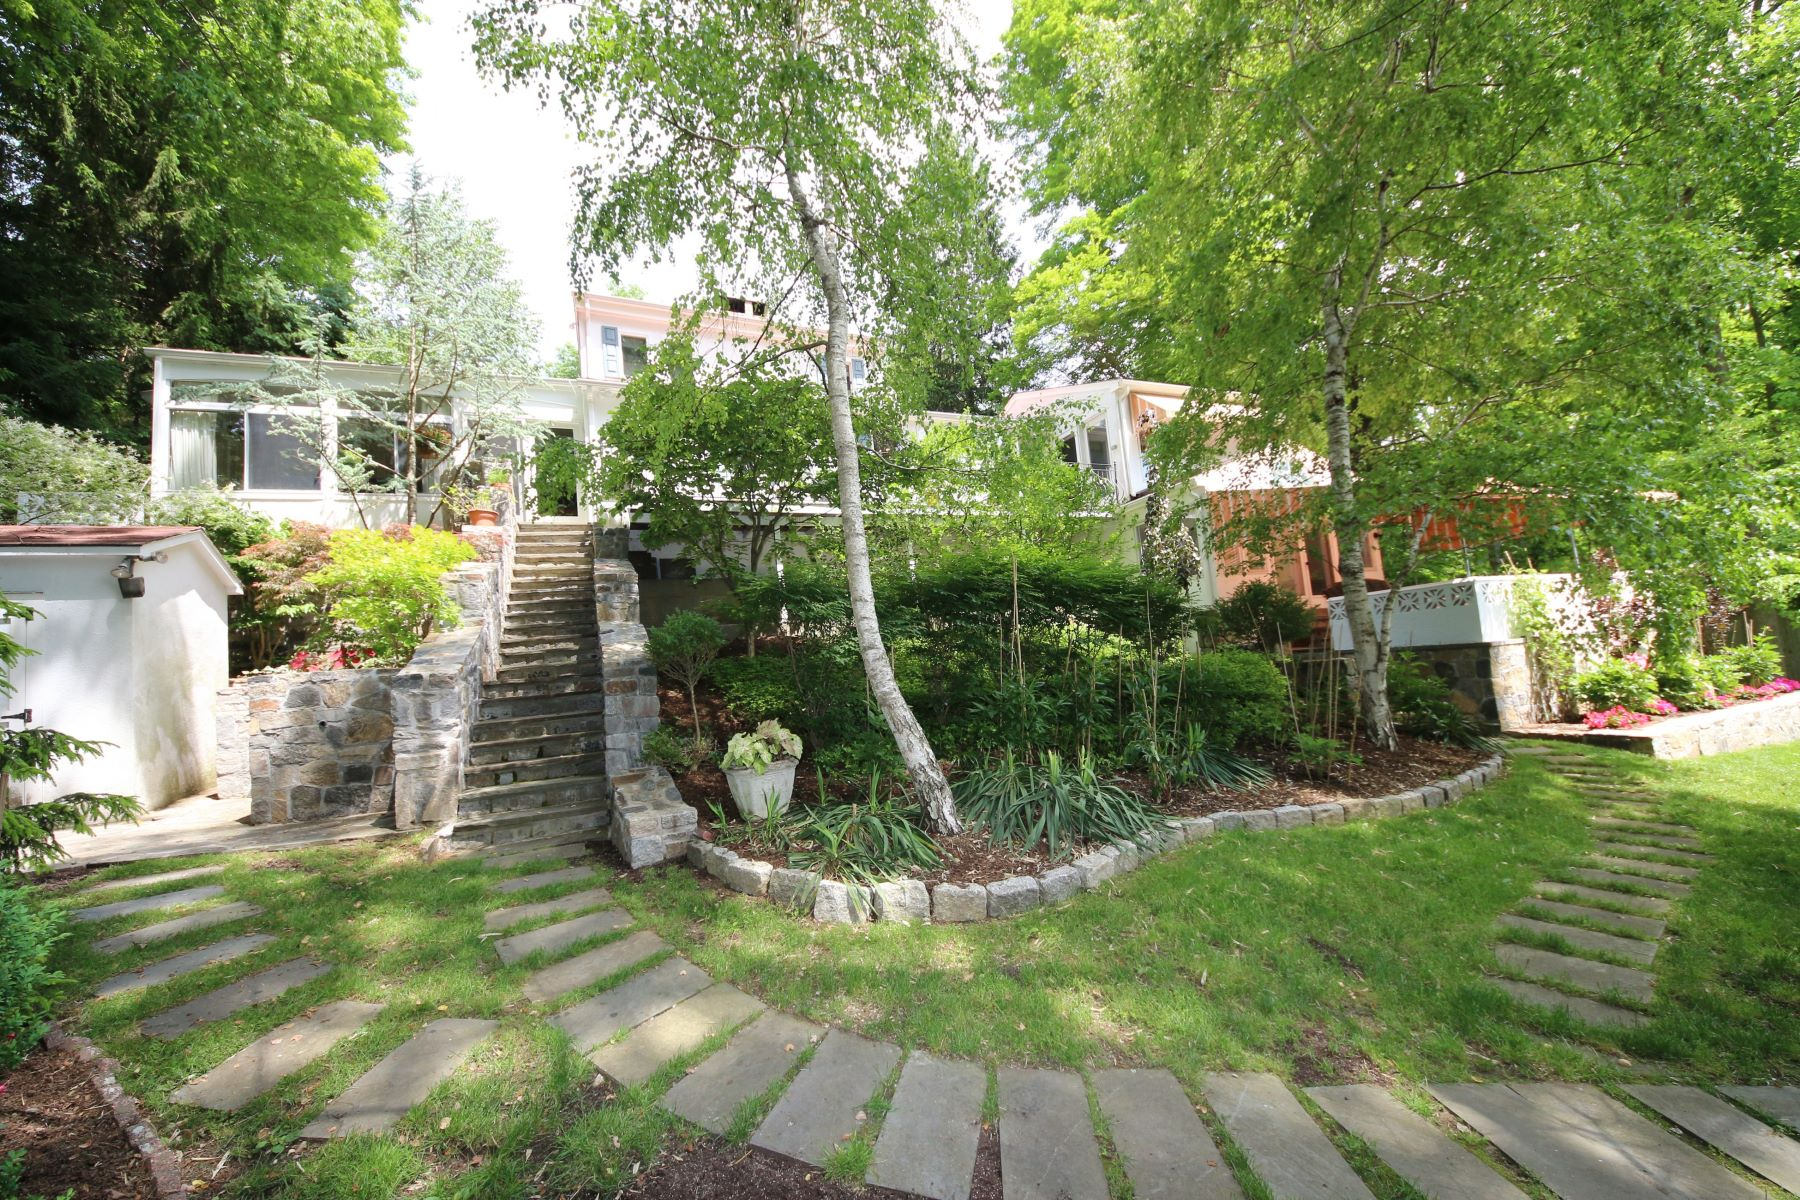 Single Family Home for Sale at One of a Kind Mediterranean Villa 22 Rita Road Ridgefield, Connecticut, 06877 United States